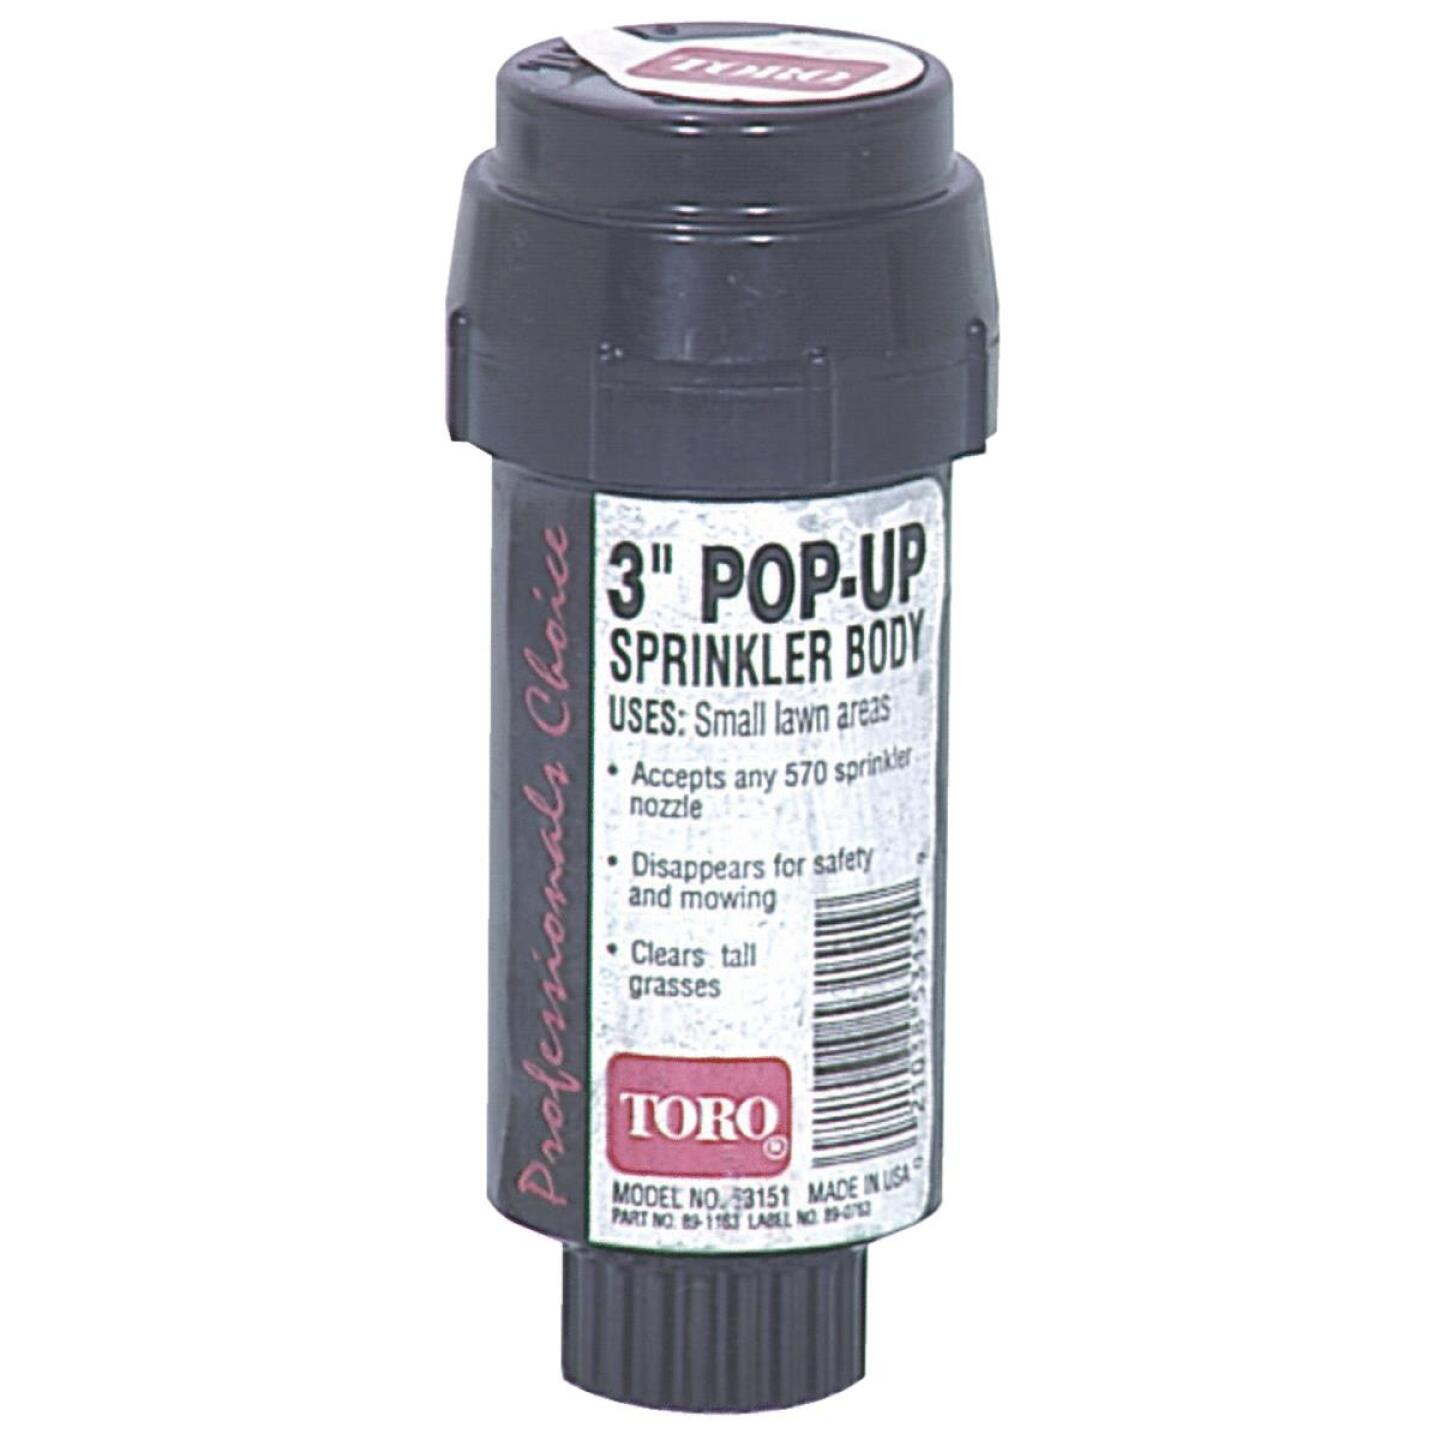 Toro 3 In. Pop-Up Head Sprinkler Body Image 1